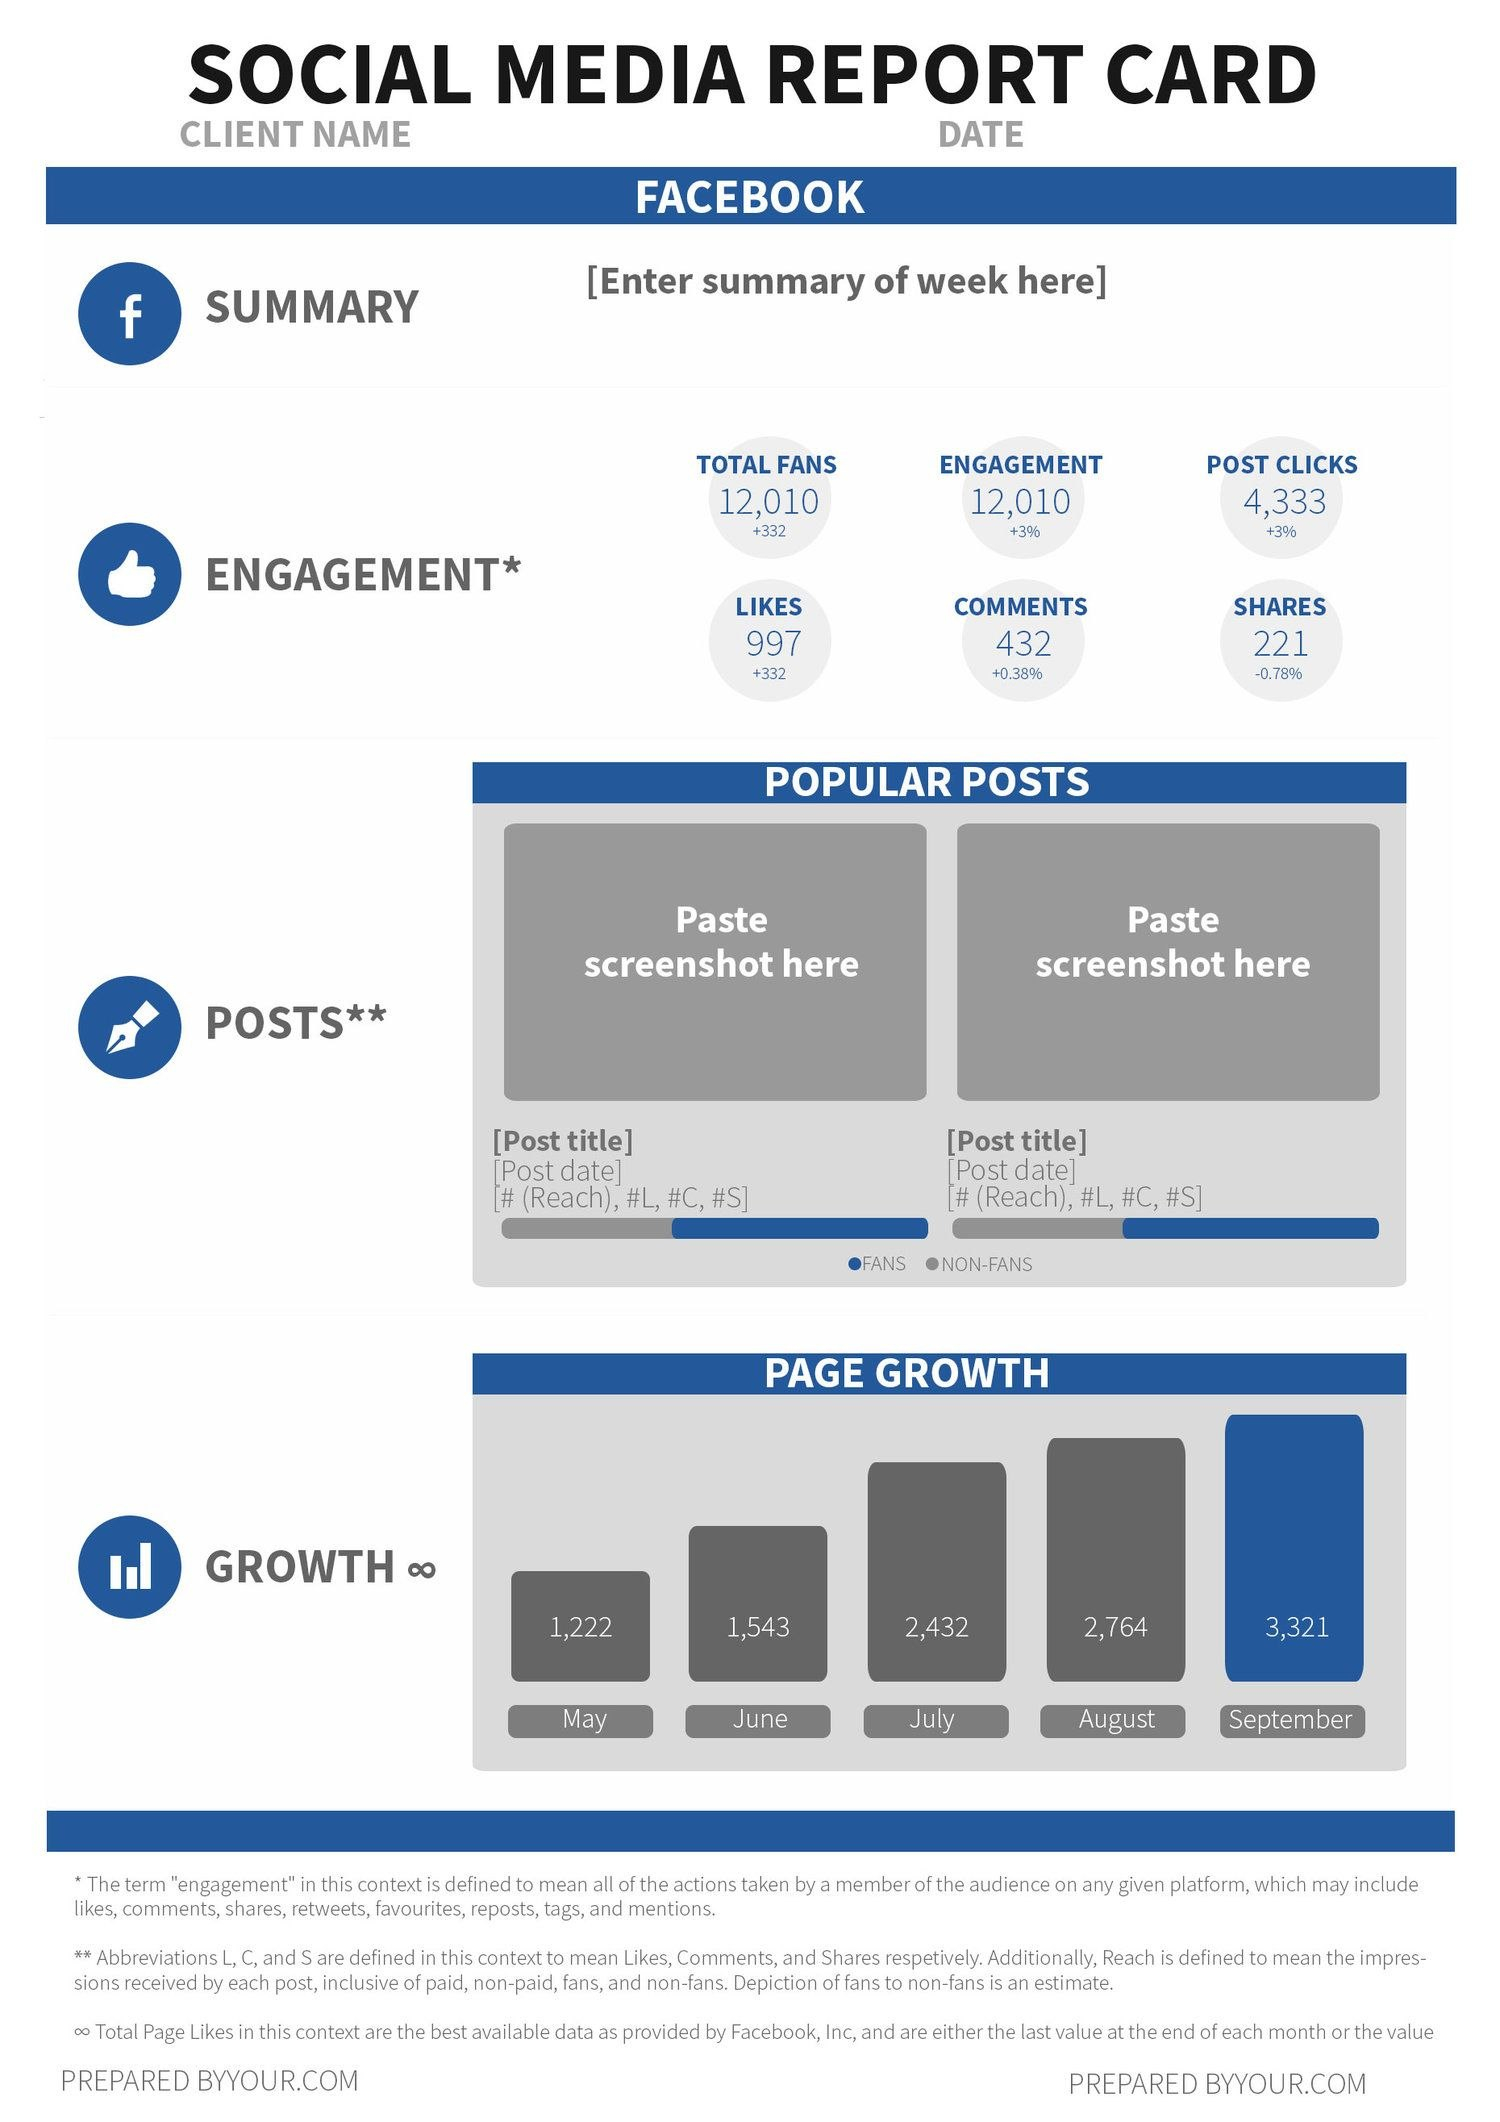 Use This Free Social Media Report Card Template To Wow Your Boss And With Free Social Media Report Template